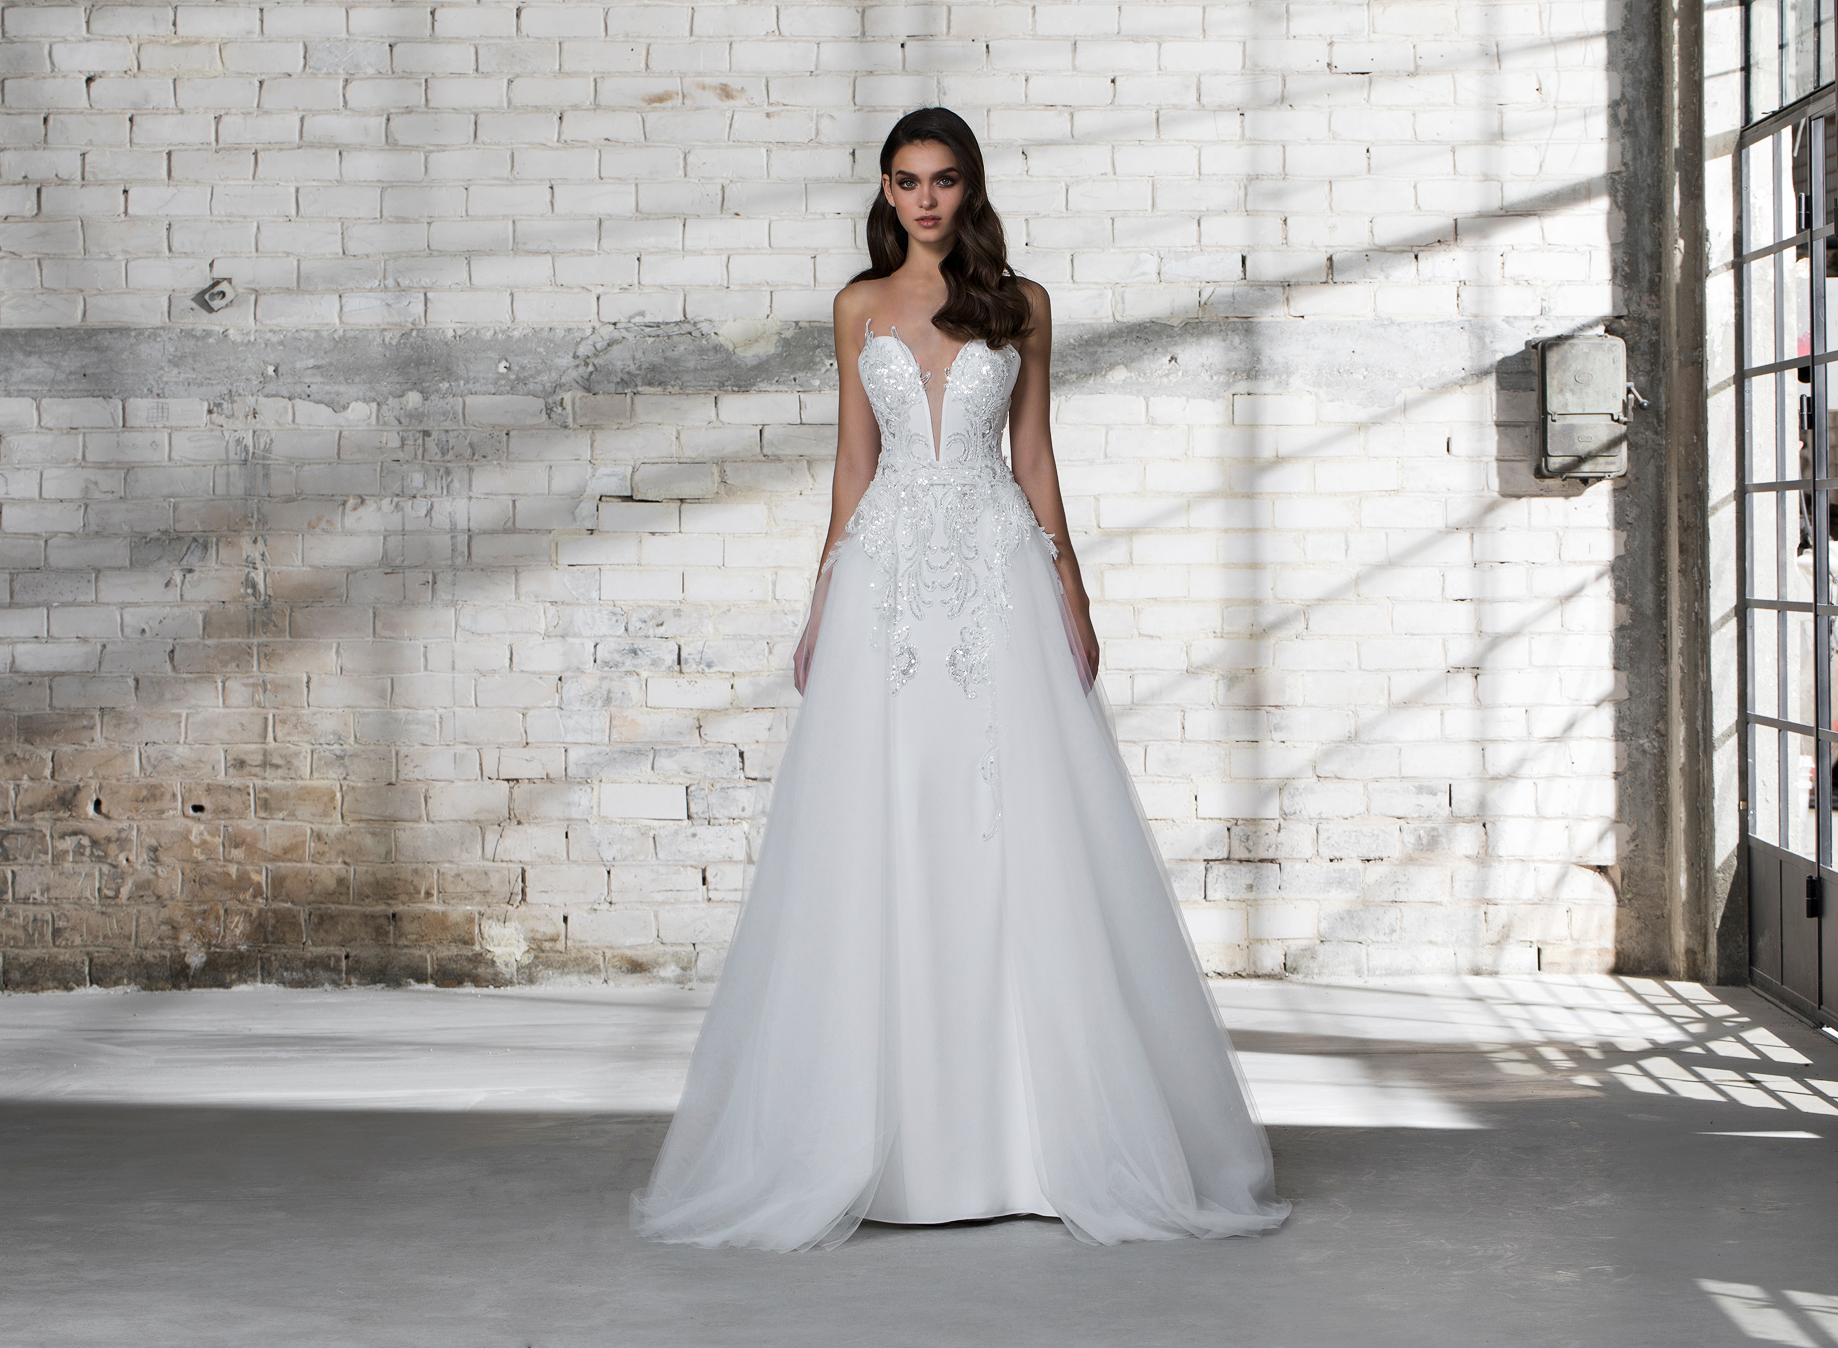 pnina tornai wedding dress spring 2019 beaded a-line sleeveless